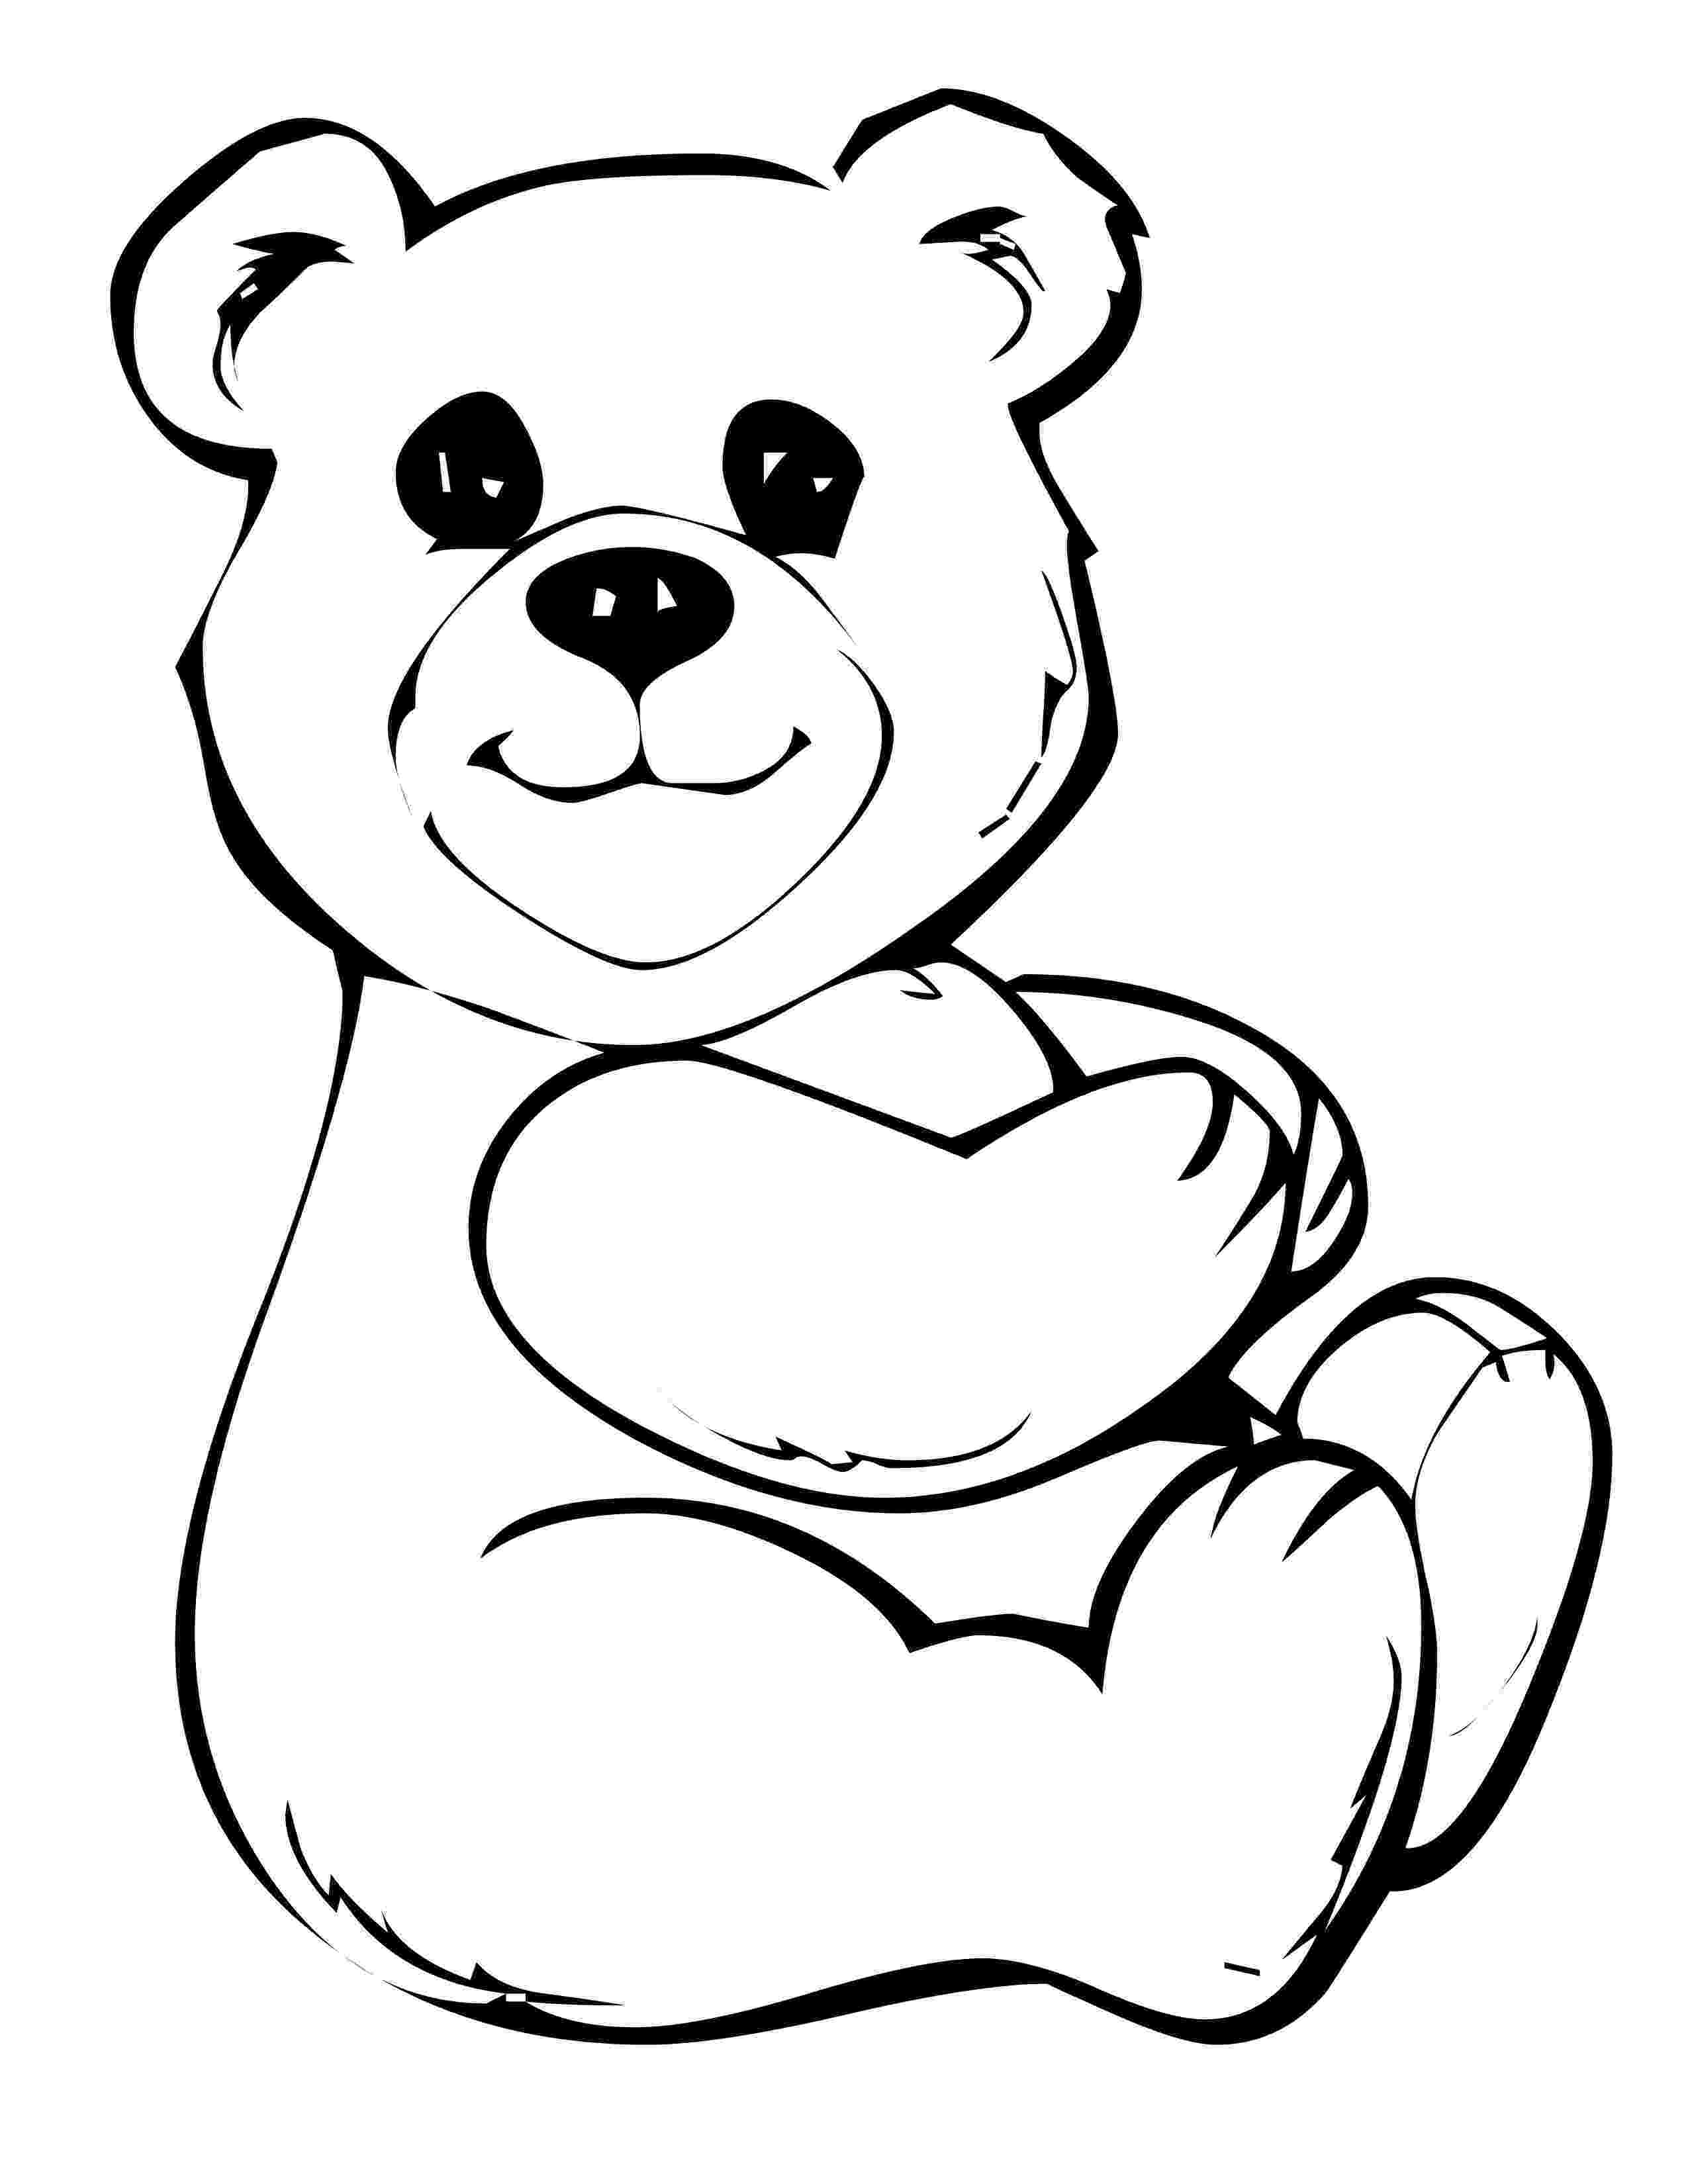 teddy bear coloring pictures free printable teddy bear coloring pages for kids pictures bear coloring teddy